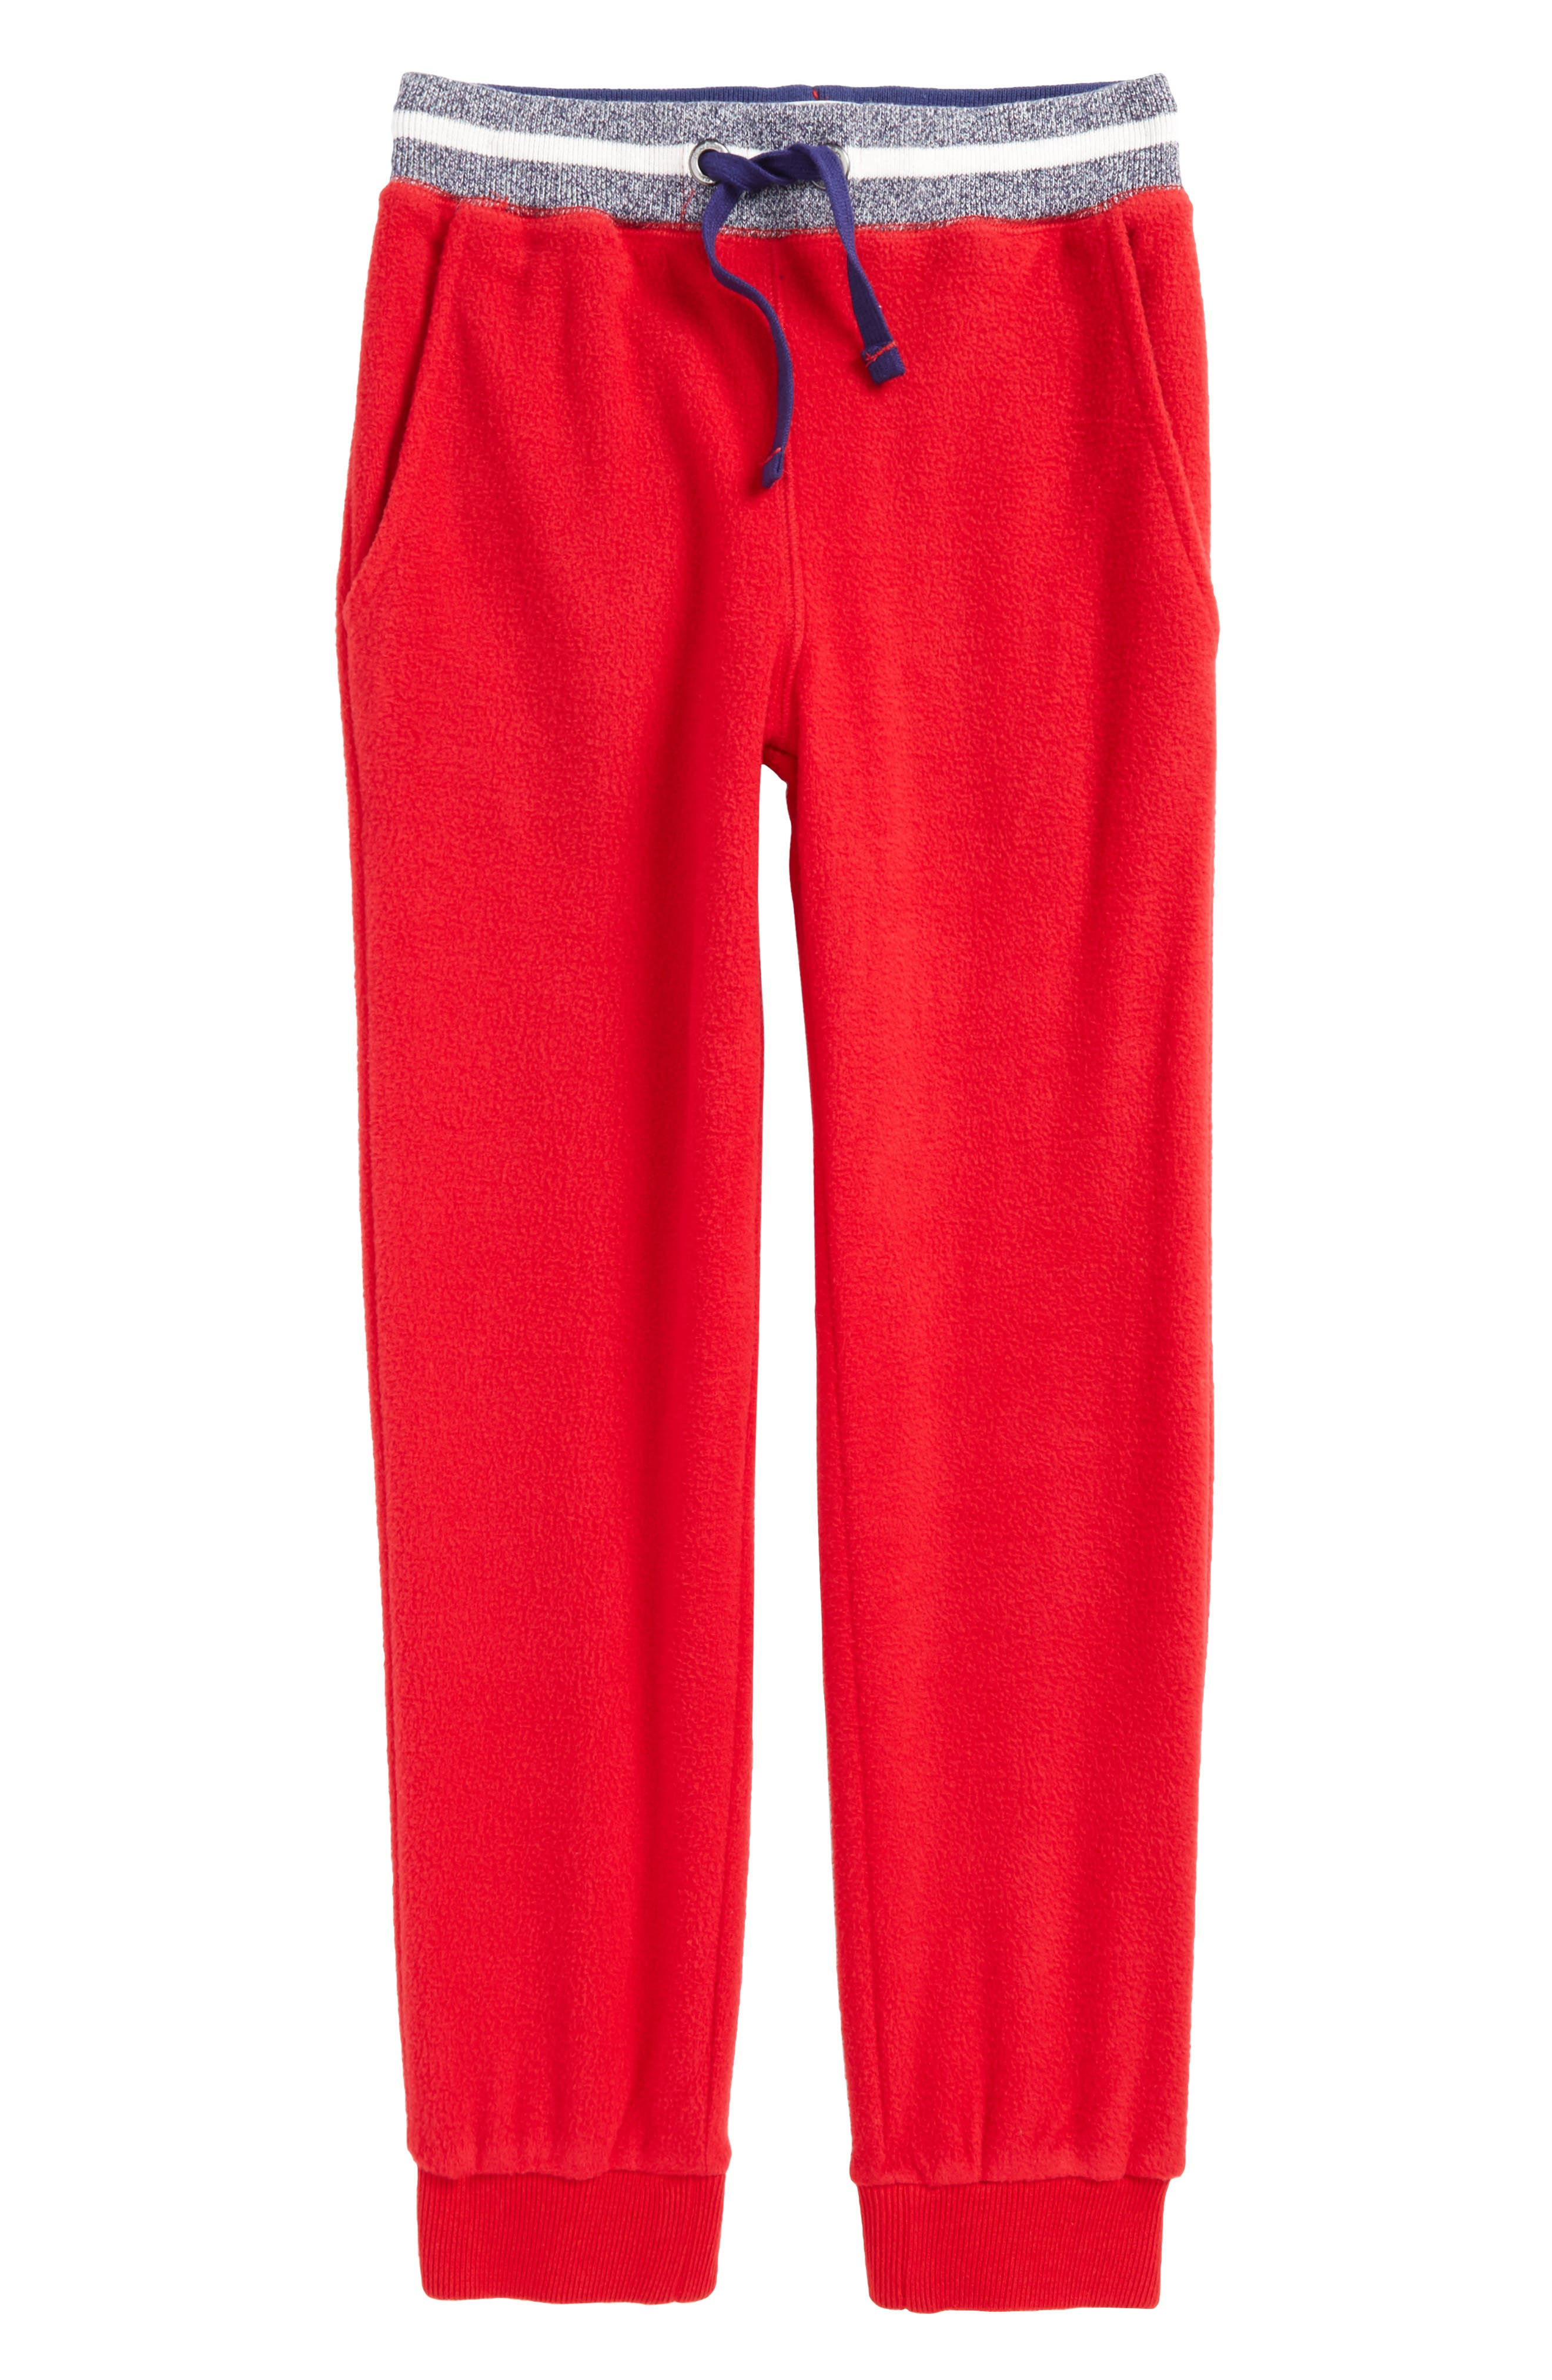 Main Image - Mini Boden Microfleece Jogger Pants (Toddler Boys, Little Boys & Big Boys)